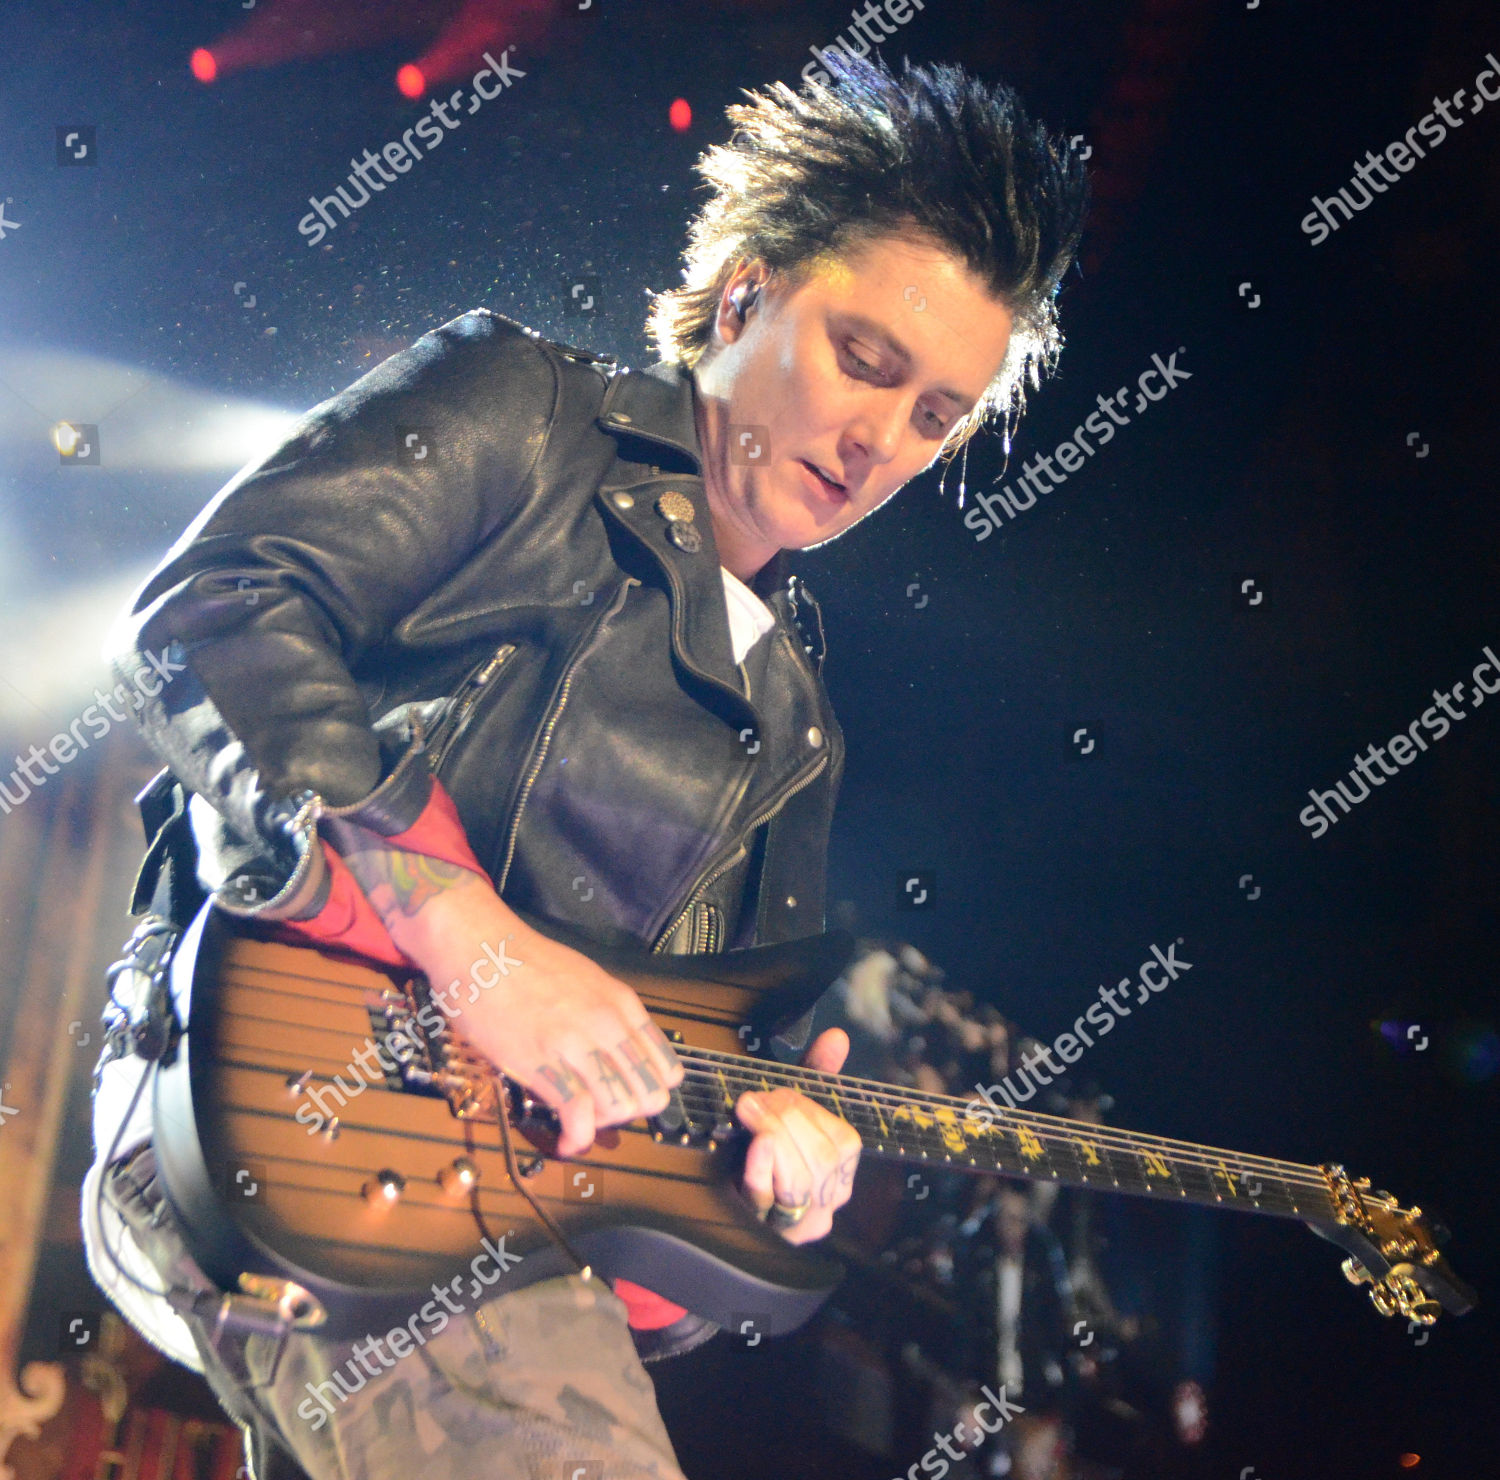 Lead guitarist Synyster Gates band Avenged Sevenfold